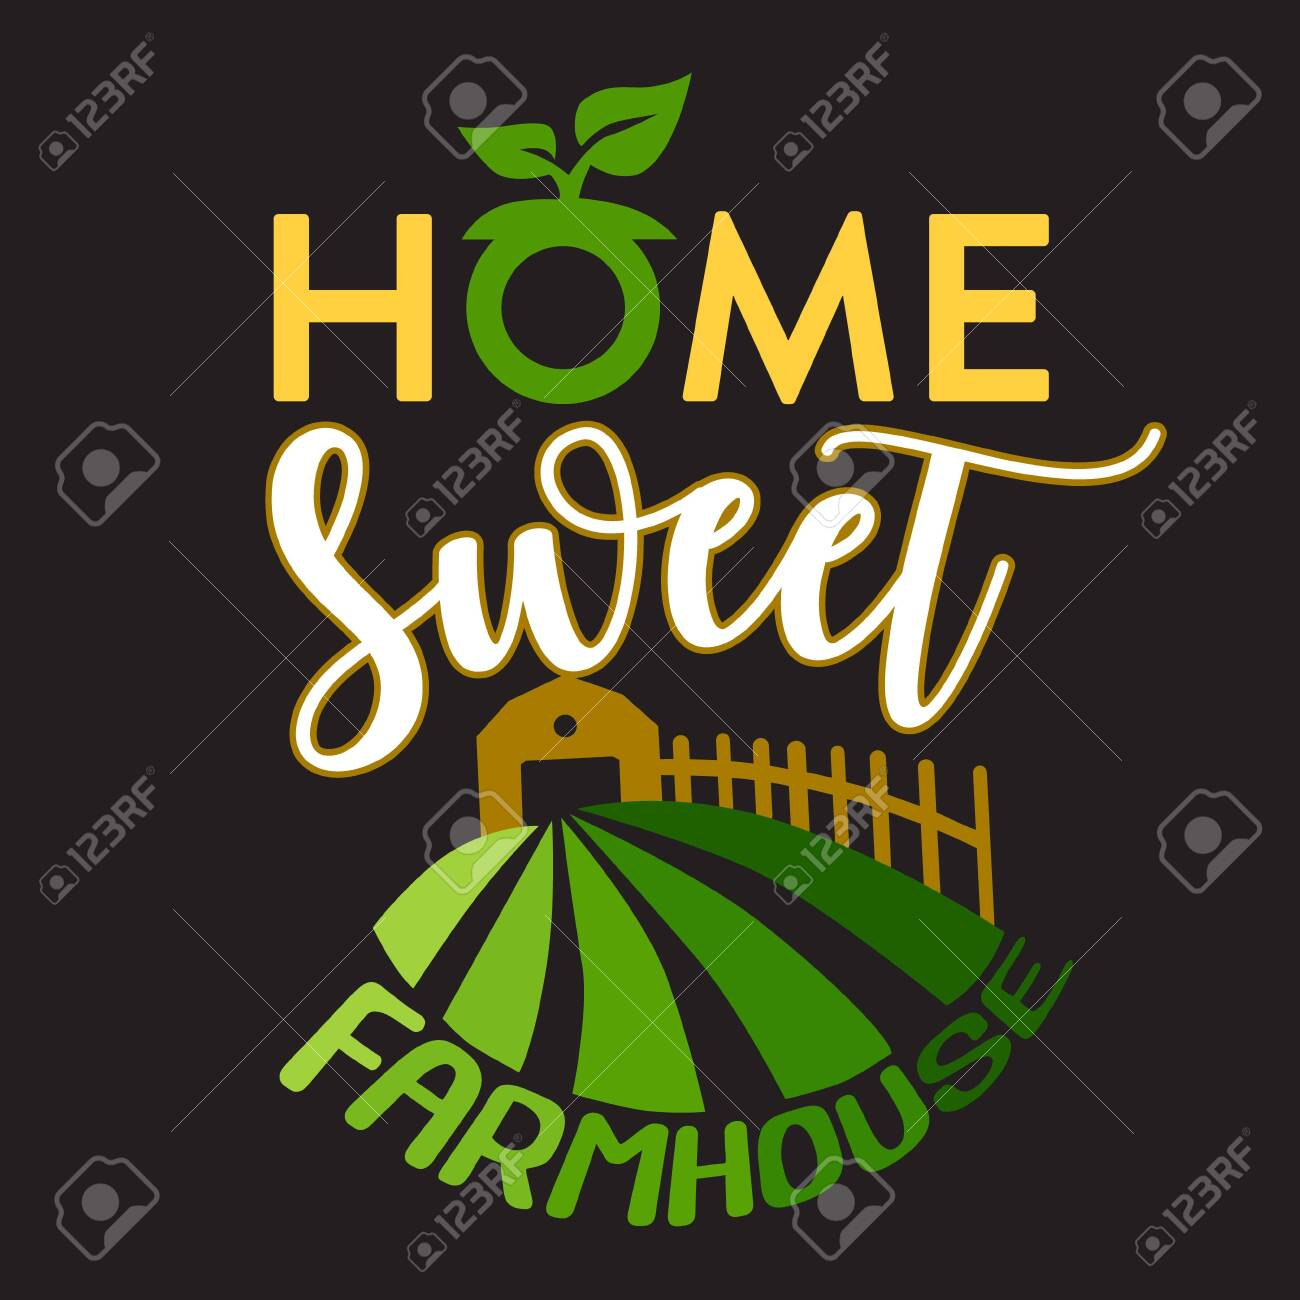 Farm Quote and saying  Home sweet farmhouse